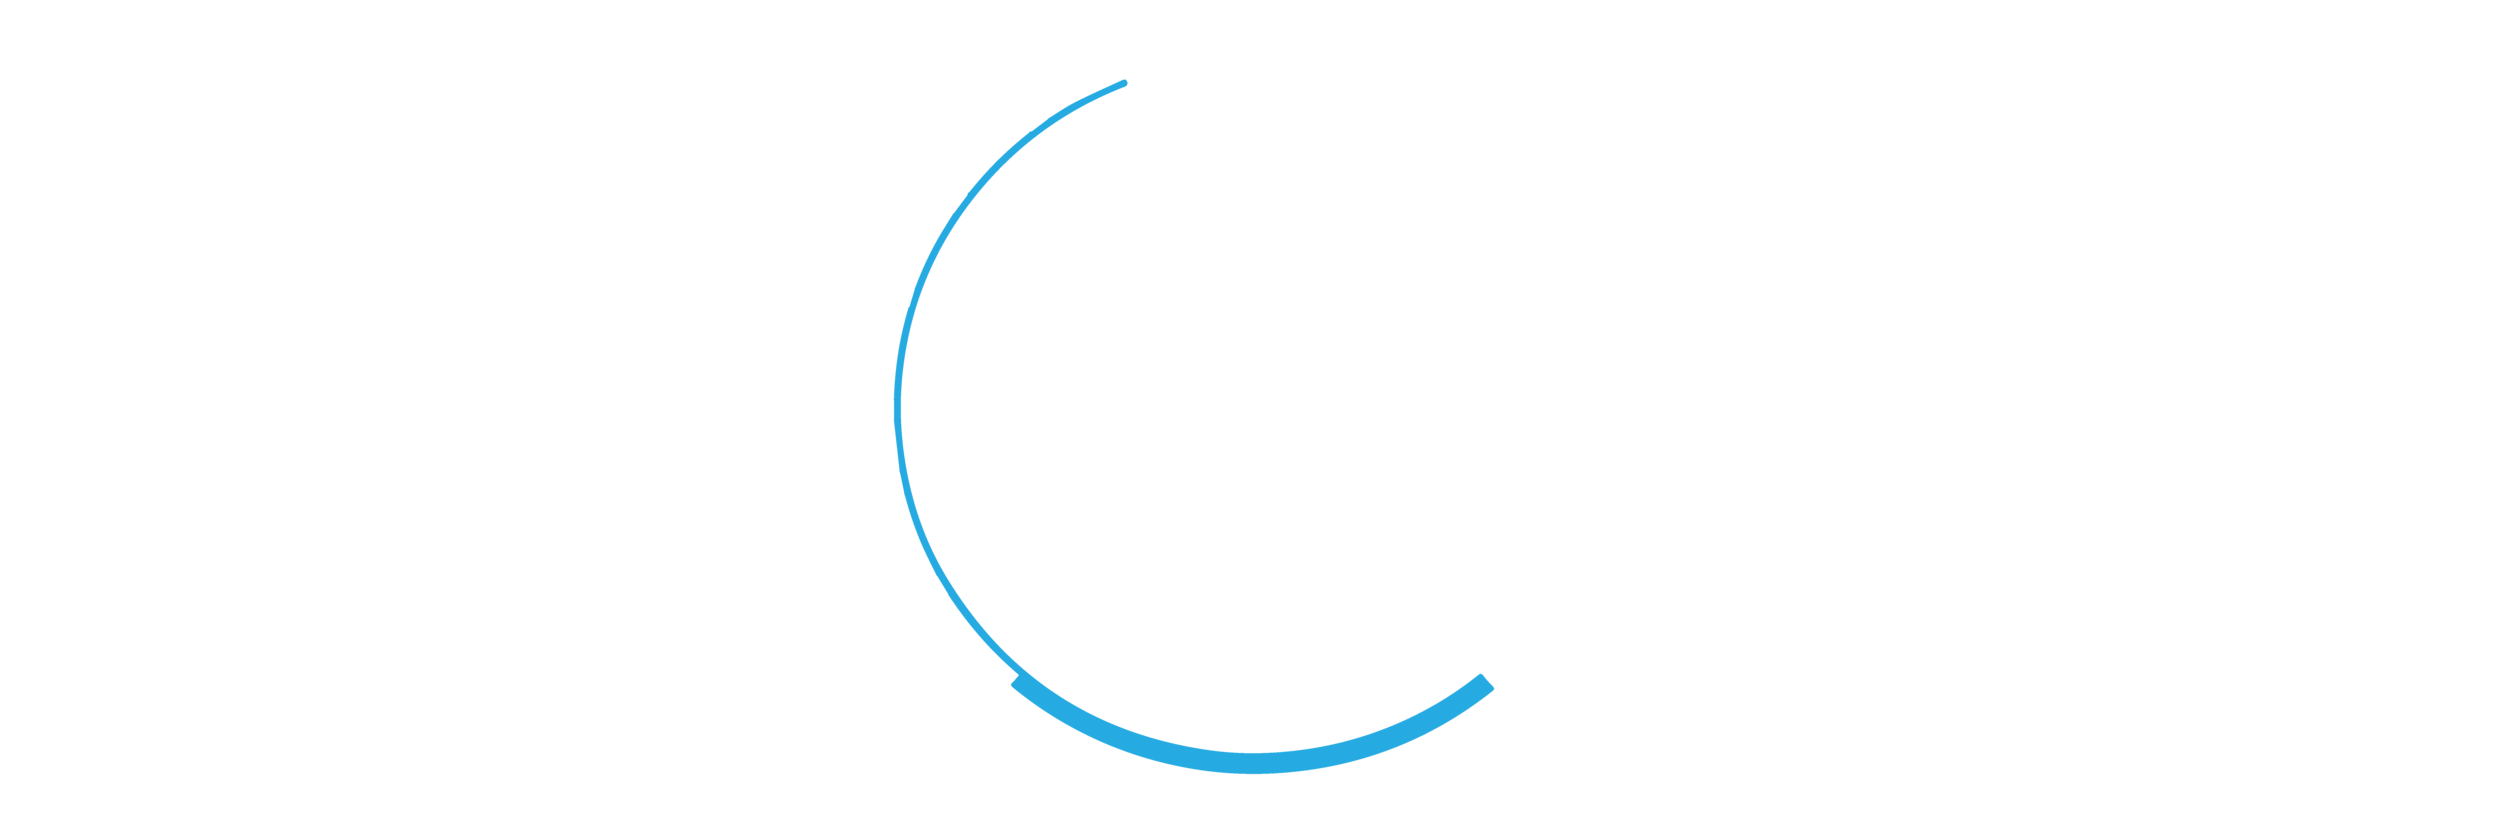 The_World_Economic_Forum_logo-21-21.png